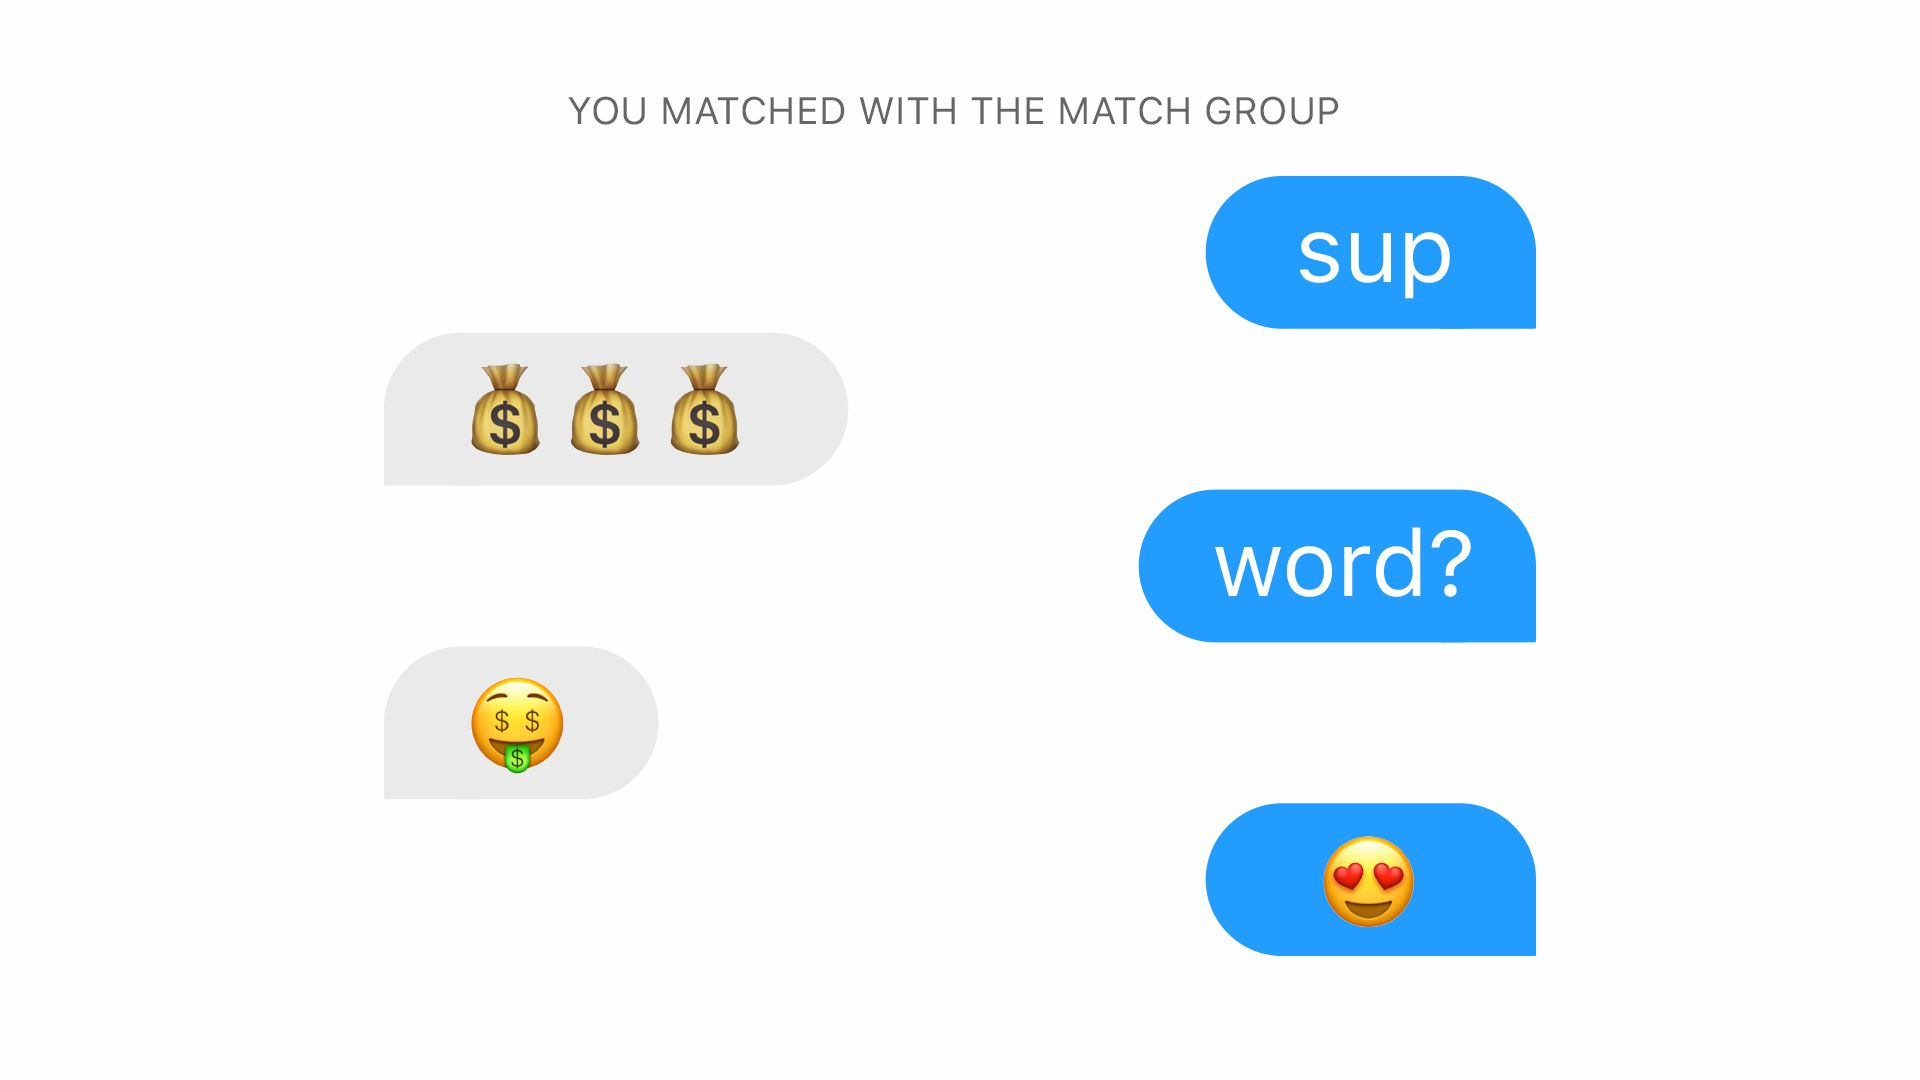 Thanks to Tinder, Match is making a killing on lonely, single millennials